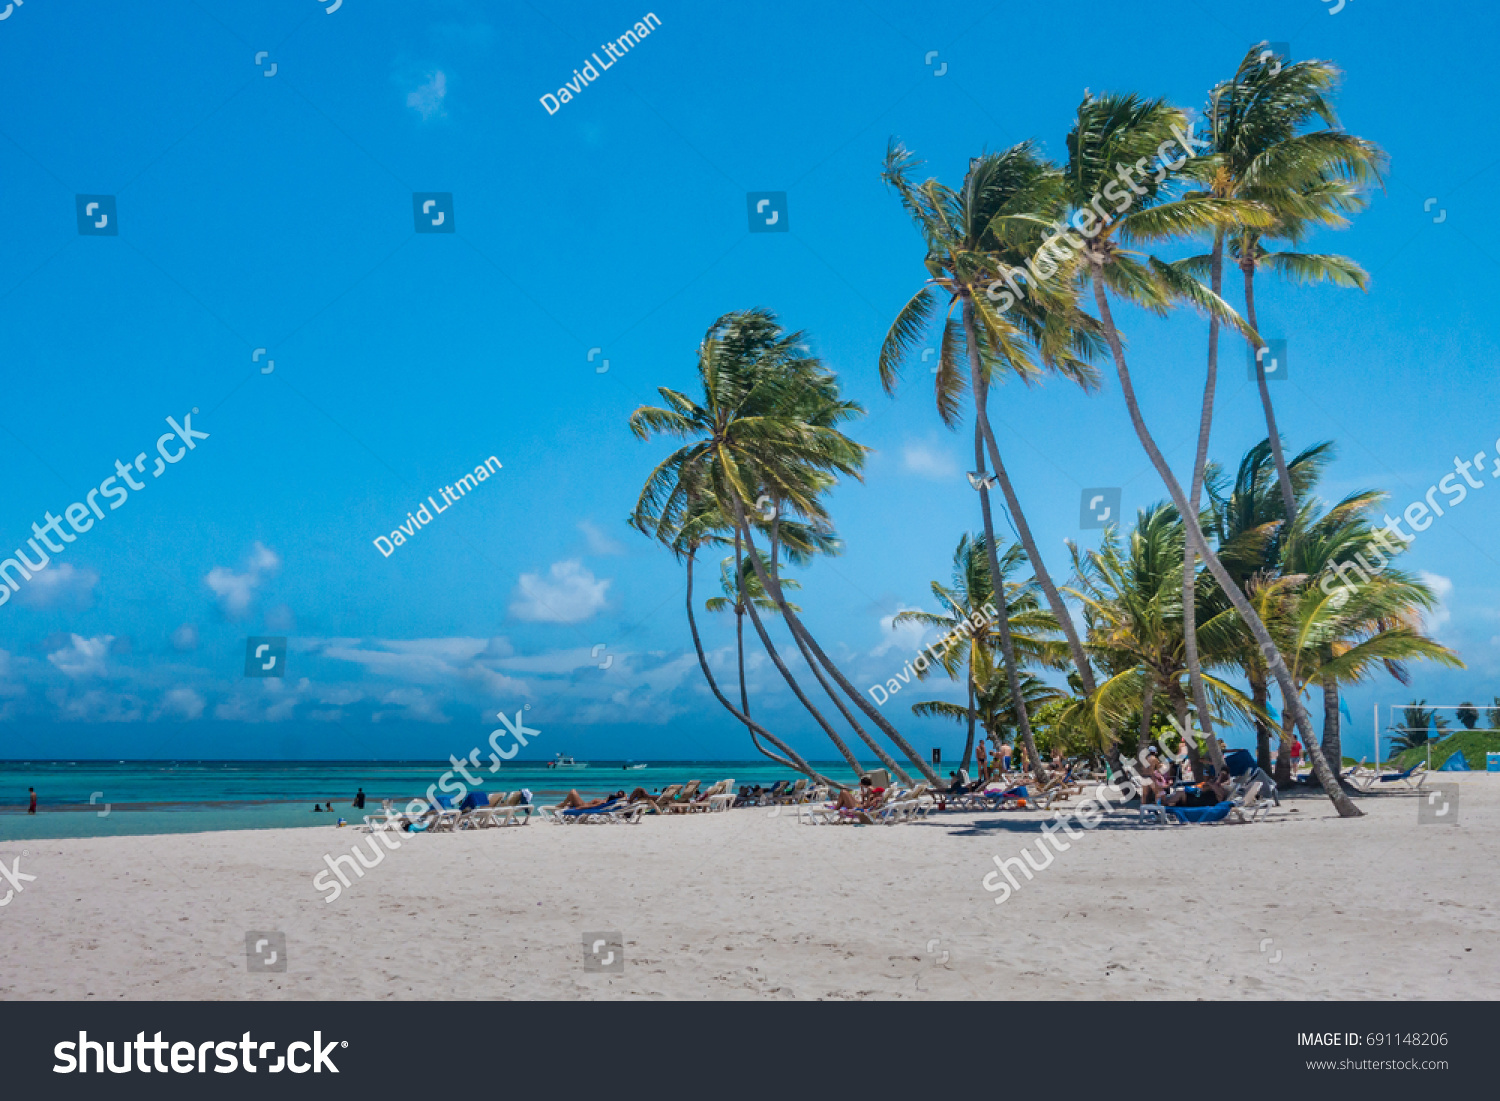 Punta Cana, Domican Repuplic - July 25, 2017: People relax on the beach on lounge chairs under the shade of palm trees on a beautiful Caribbean Island on a sunny summer day.